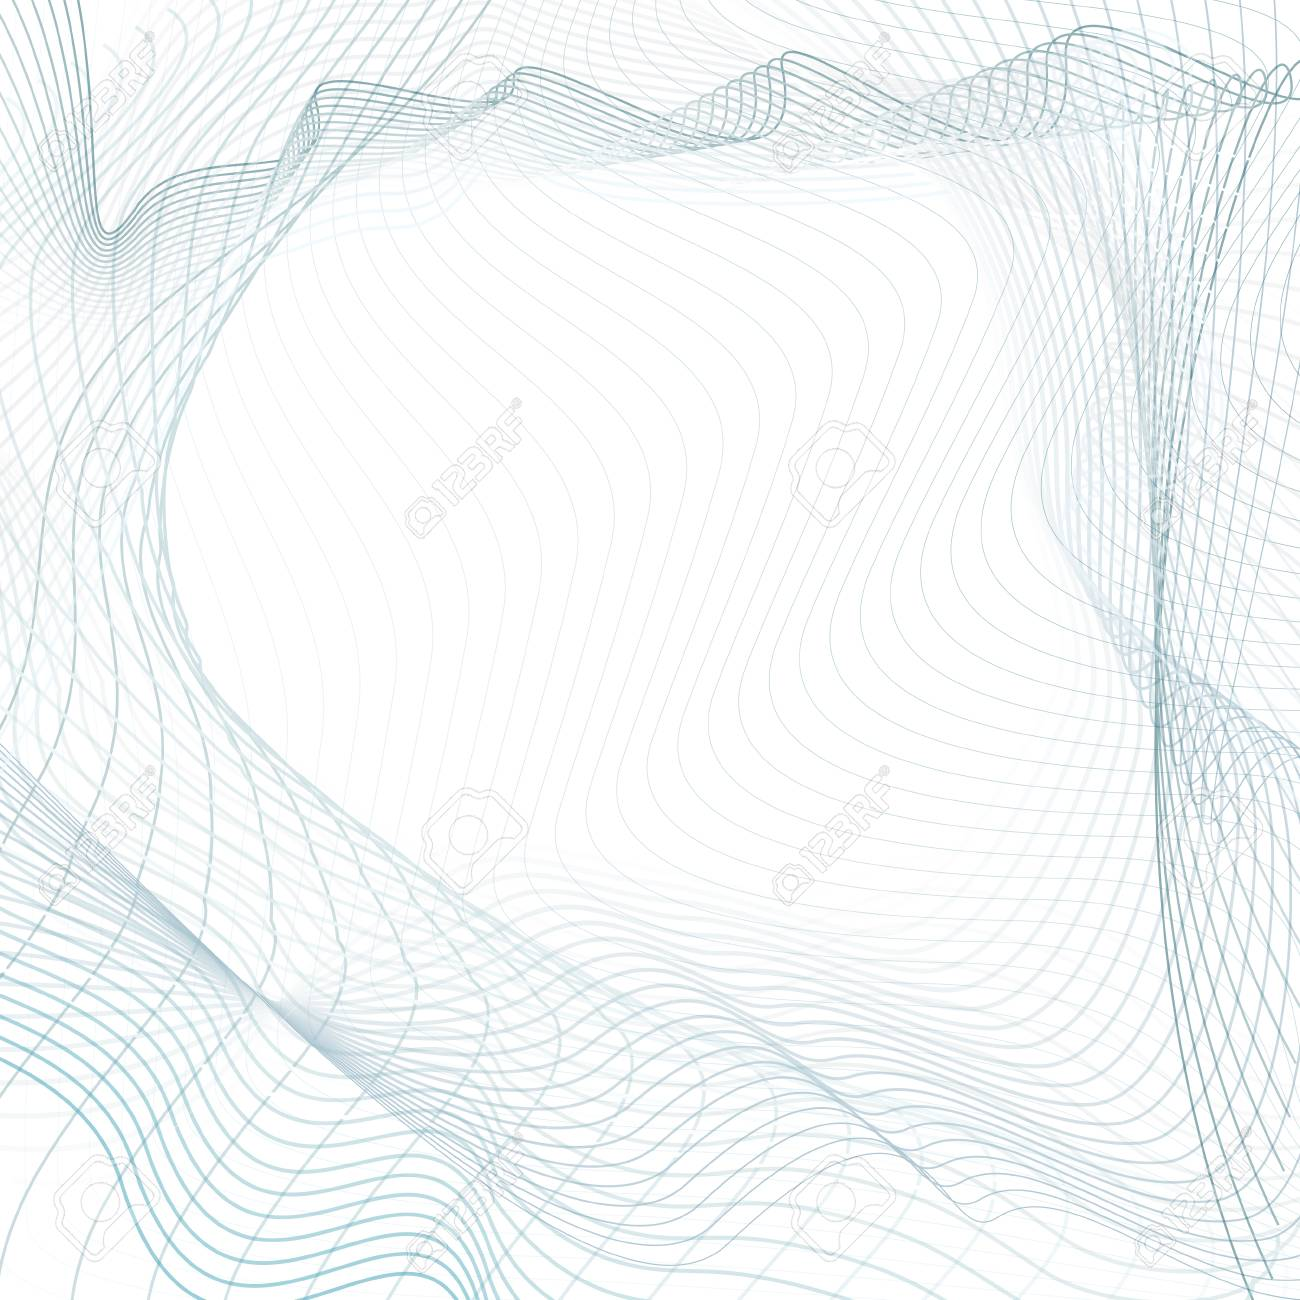 Abstract Line Art Design Light Blue Gray Waves On White Background